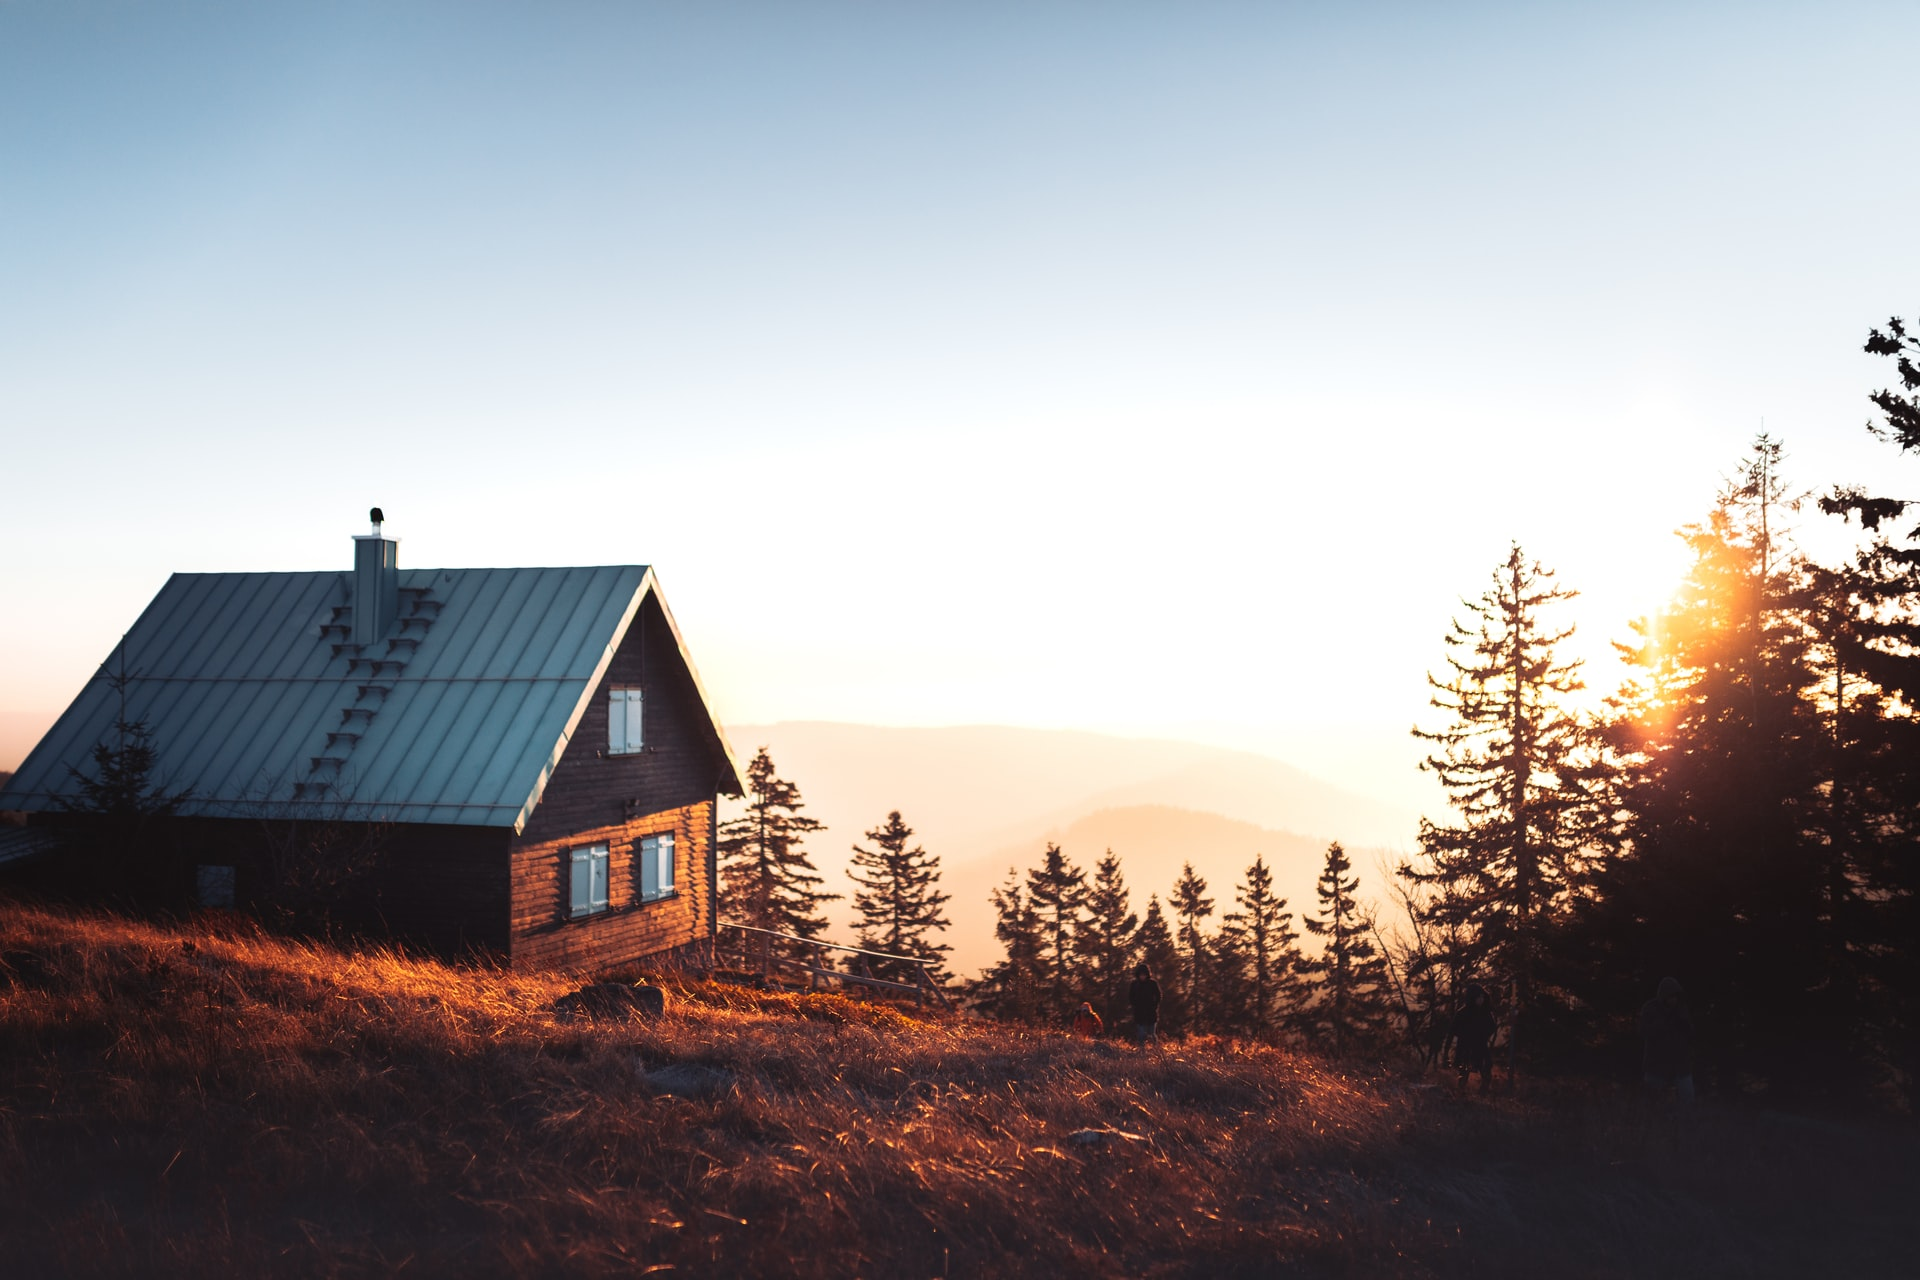 family cabin trust - cabin in woods at sunset